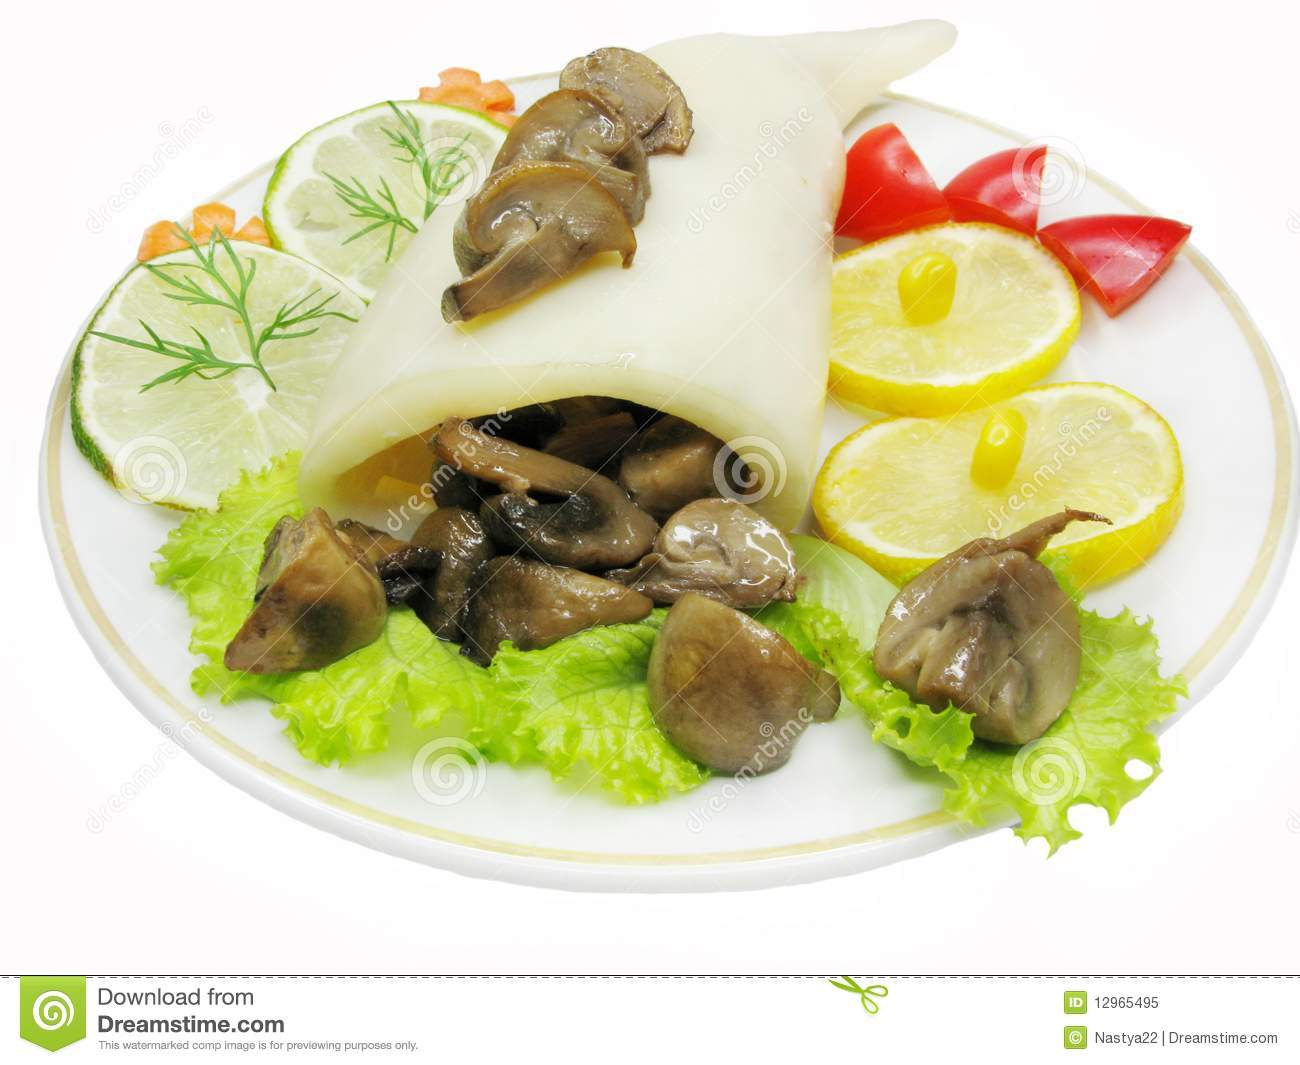 Royalty Free Stock Photo: Squid meal with mushrooms